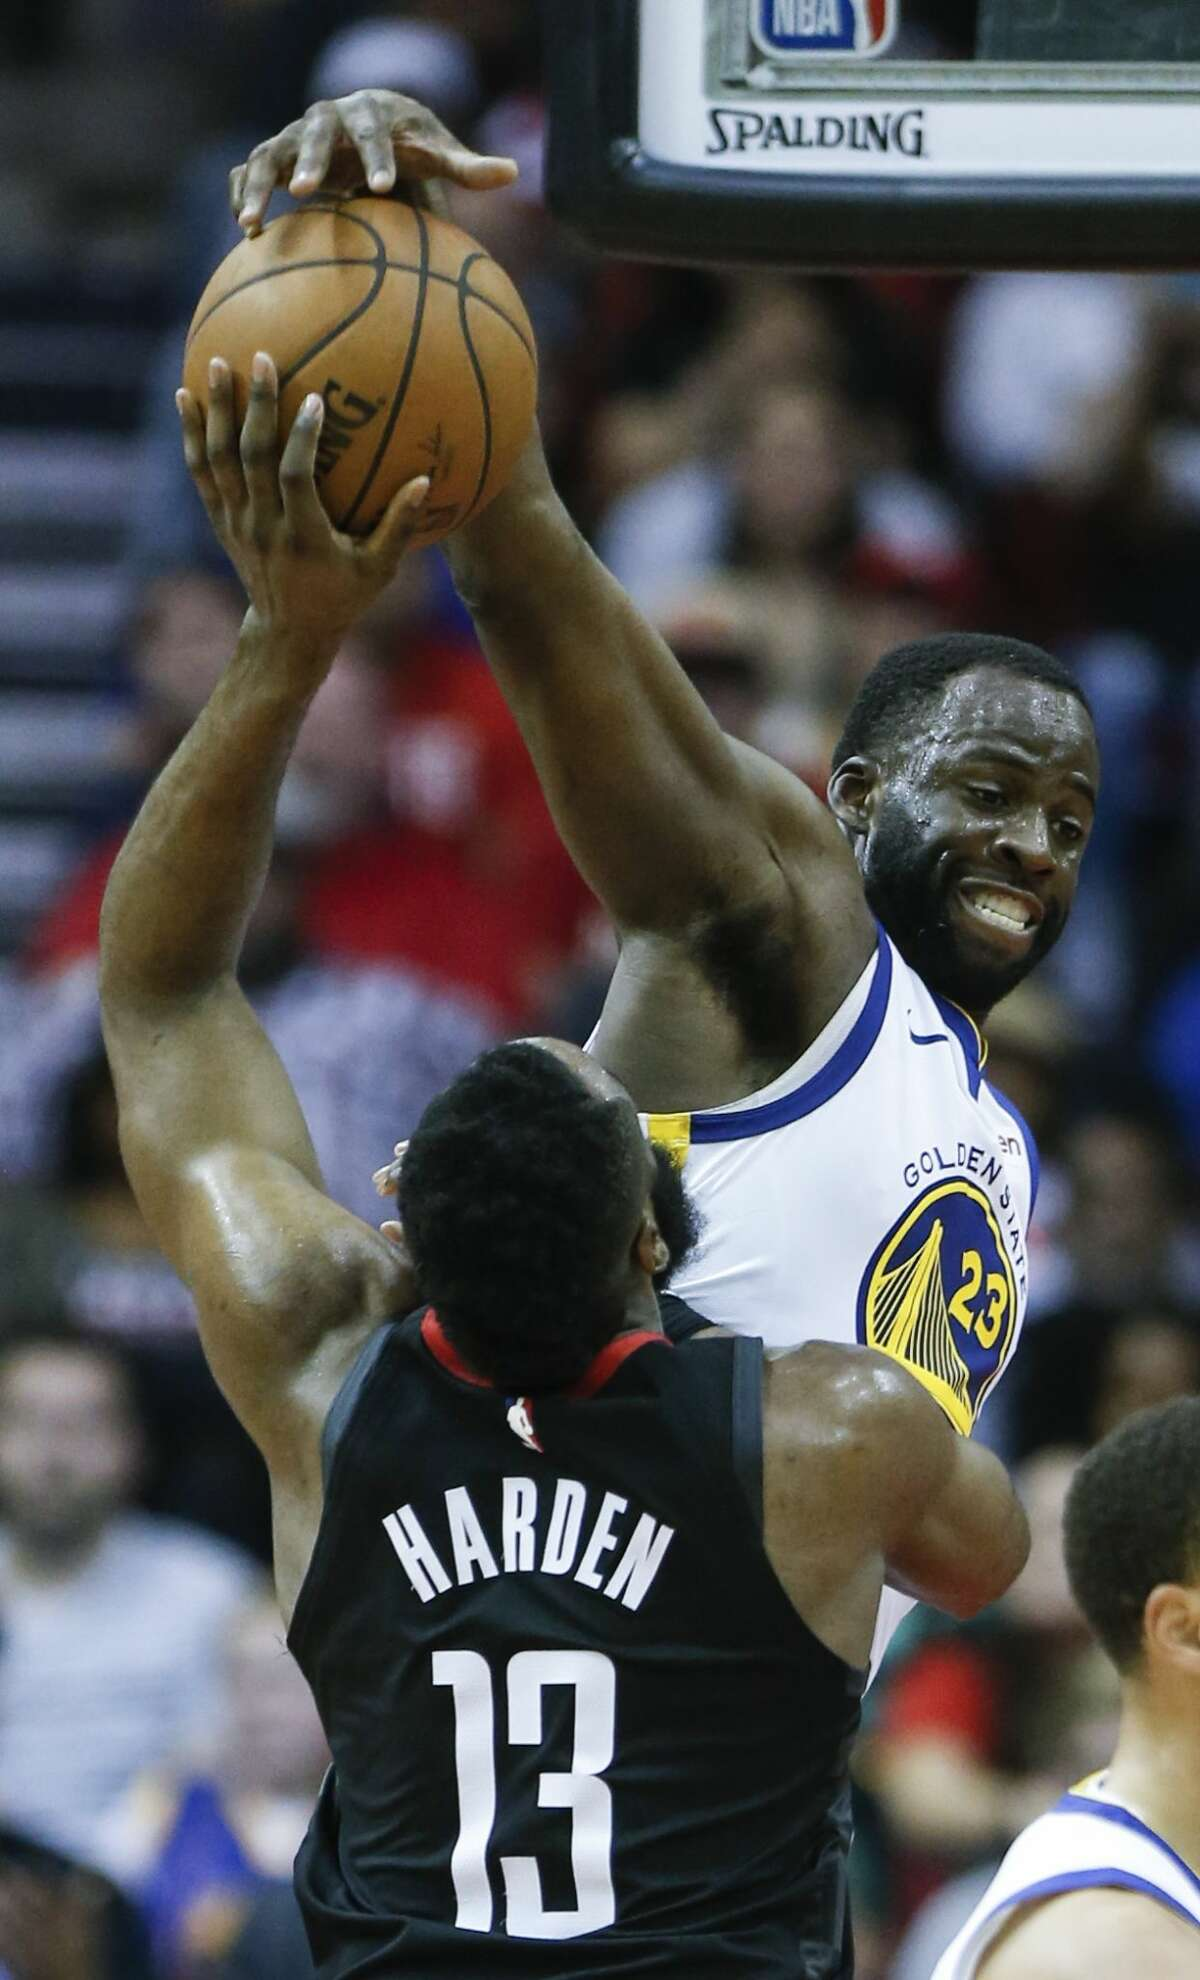 Golden State Warriors forward Draymond Green (23) blocks a shot by Houston Rockets guard James Harden (13) during the fourth quarter of an NBA basketball game at Toyota Center on Wednesday, March 13, 2019, in Houston.